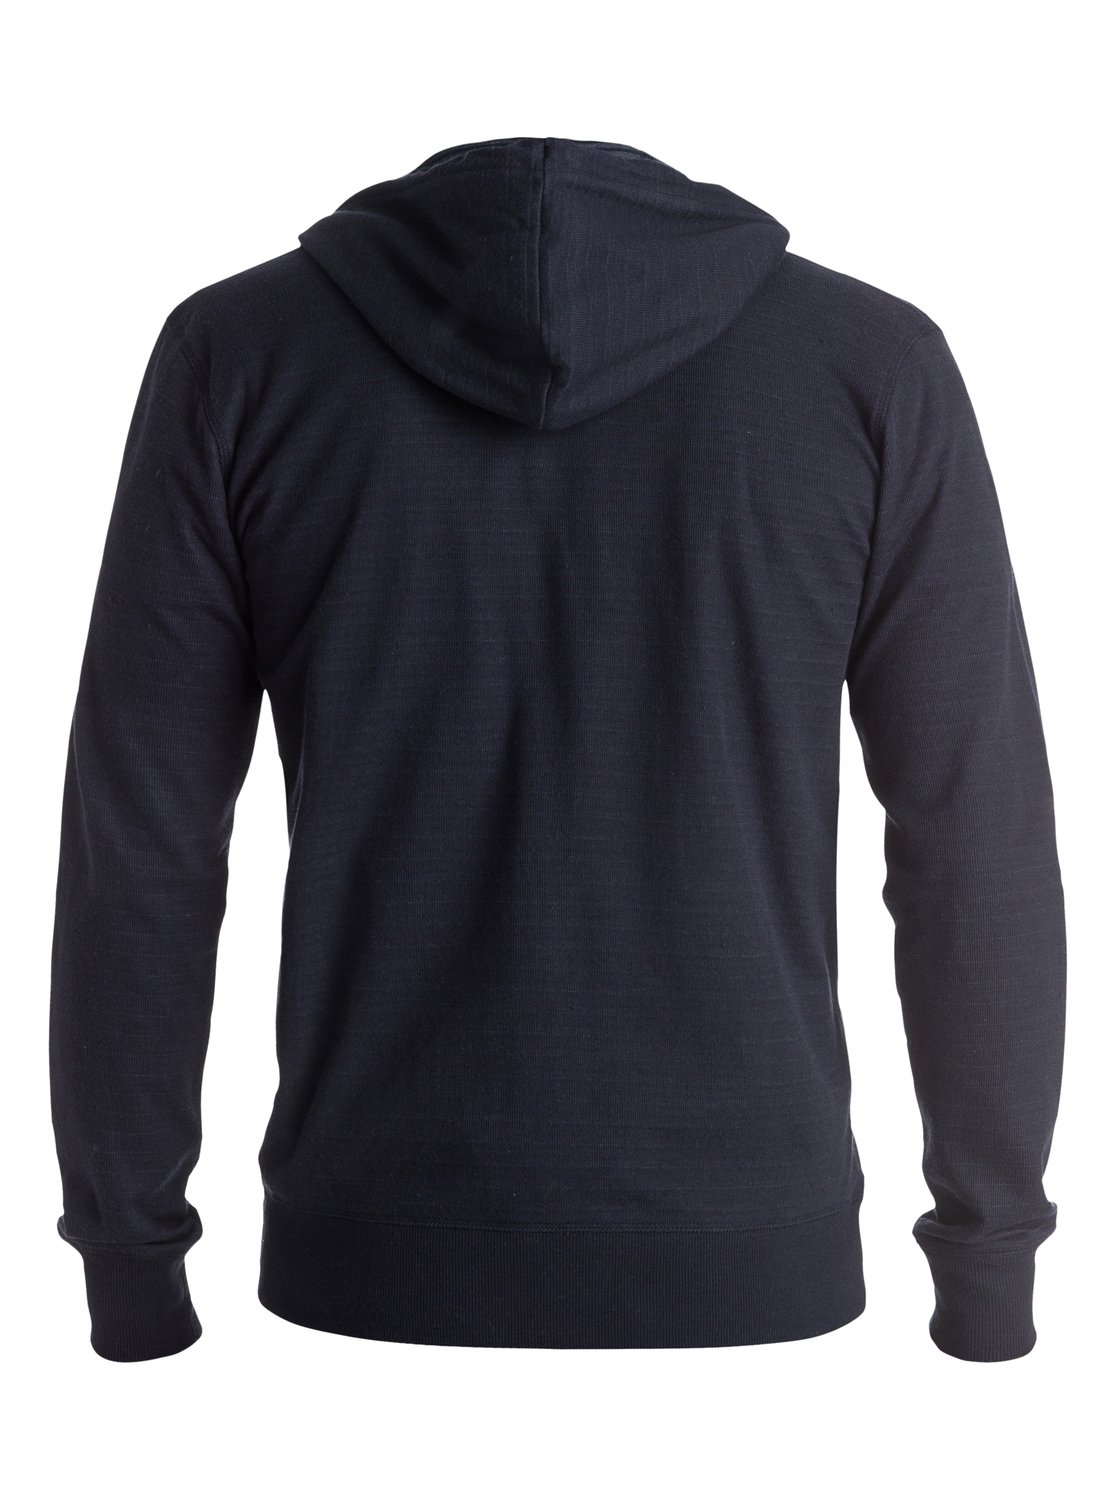 Shop Under Armour for Men's UA Tech™ ¼ Zip in our Men's Long Sleeve Shirt department. Free shipping is available in US.